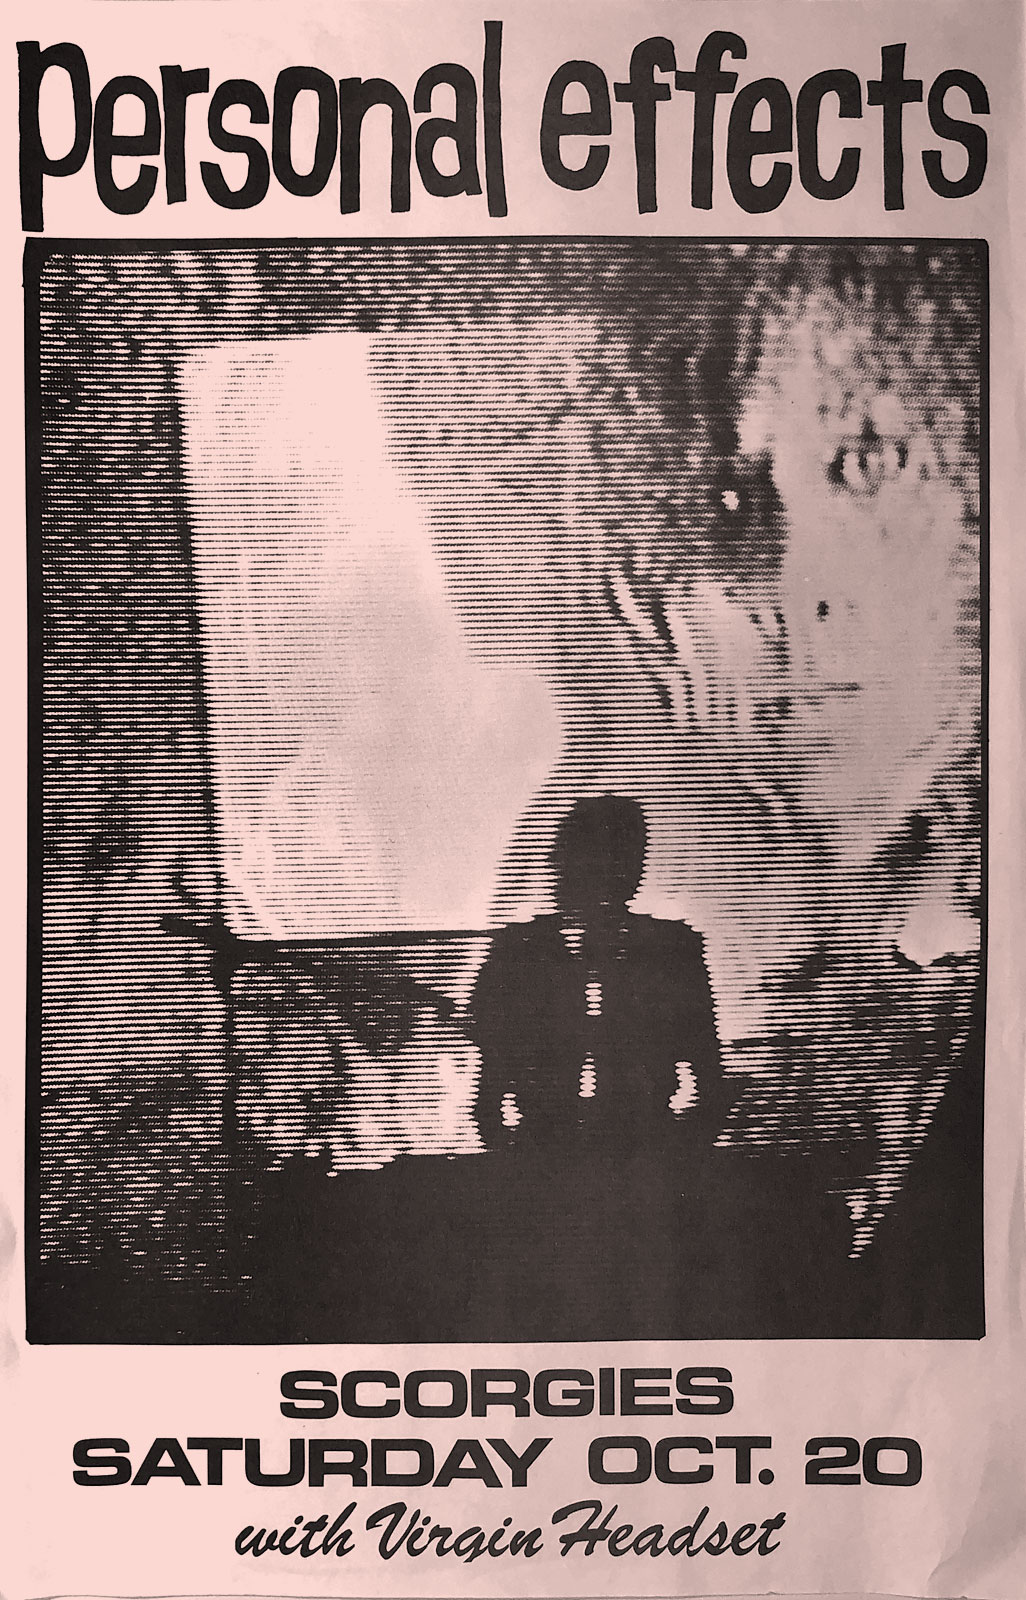 Poster for Personal Effects with Virgin Headset at Scorgie's in Rochester, New York on 10.20.1984